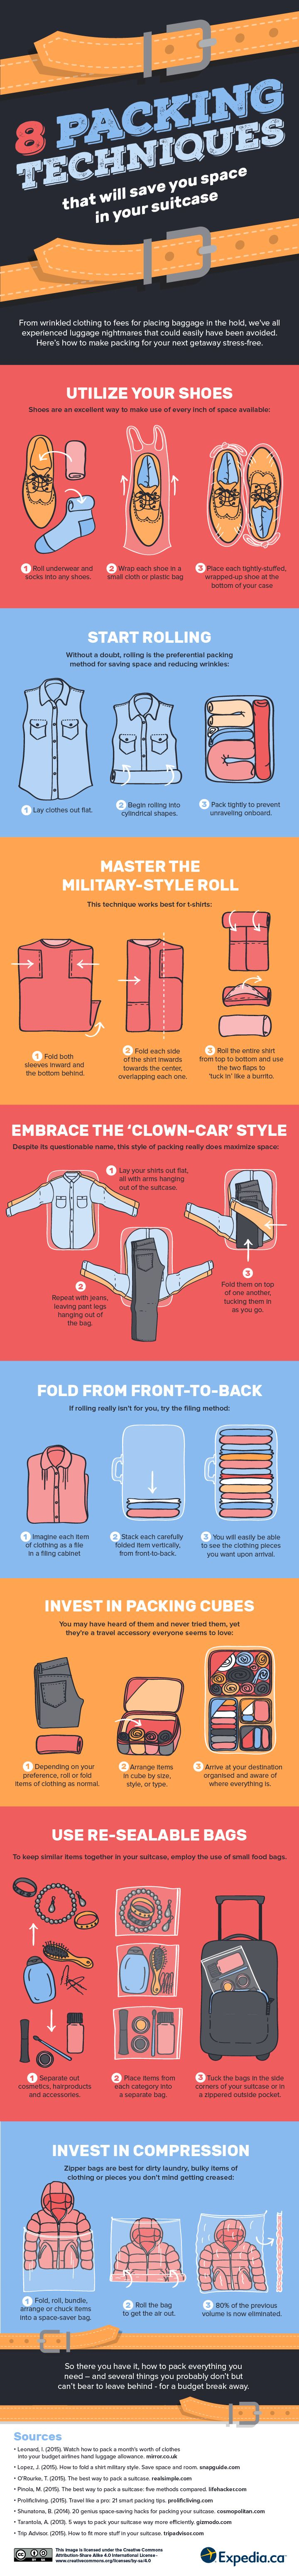 Expedia.ca, a travel booking site, has also weighed in on the great packing debate with an infographic filled with tips to help travellers pack.